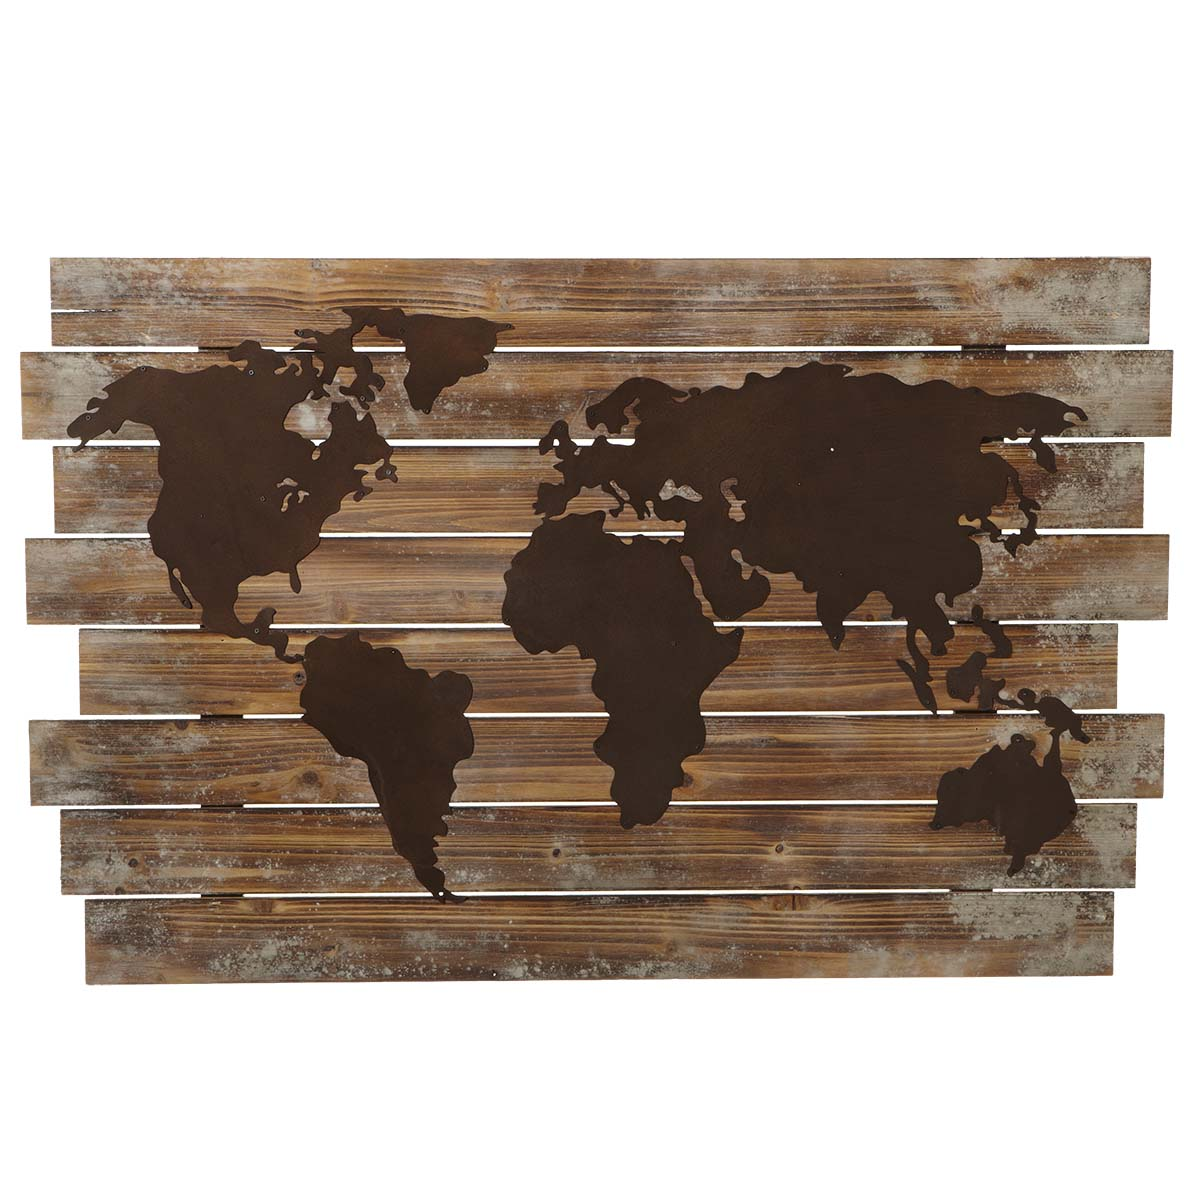 Rustic world map wall decor gumiabroncs Choice Image